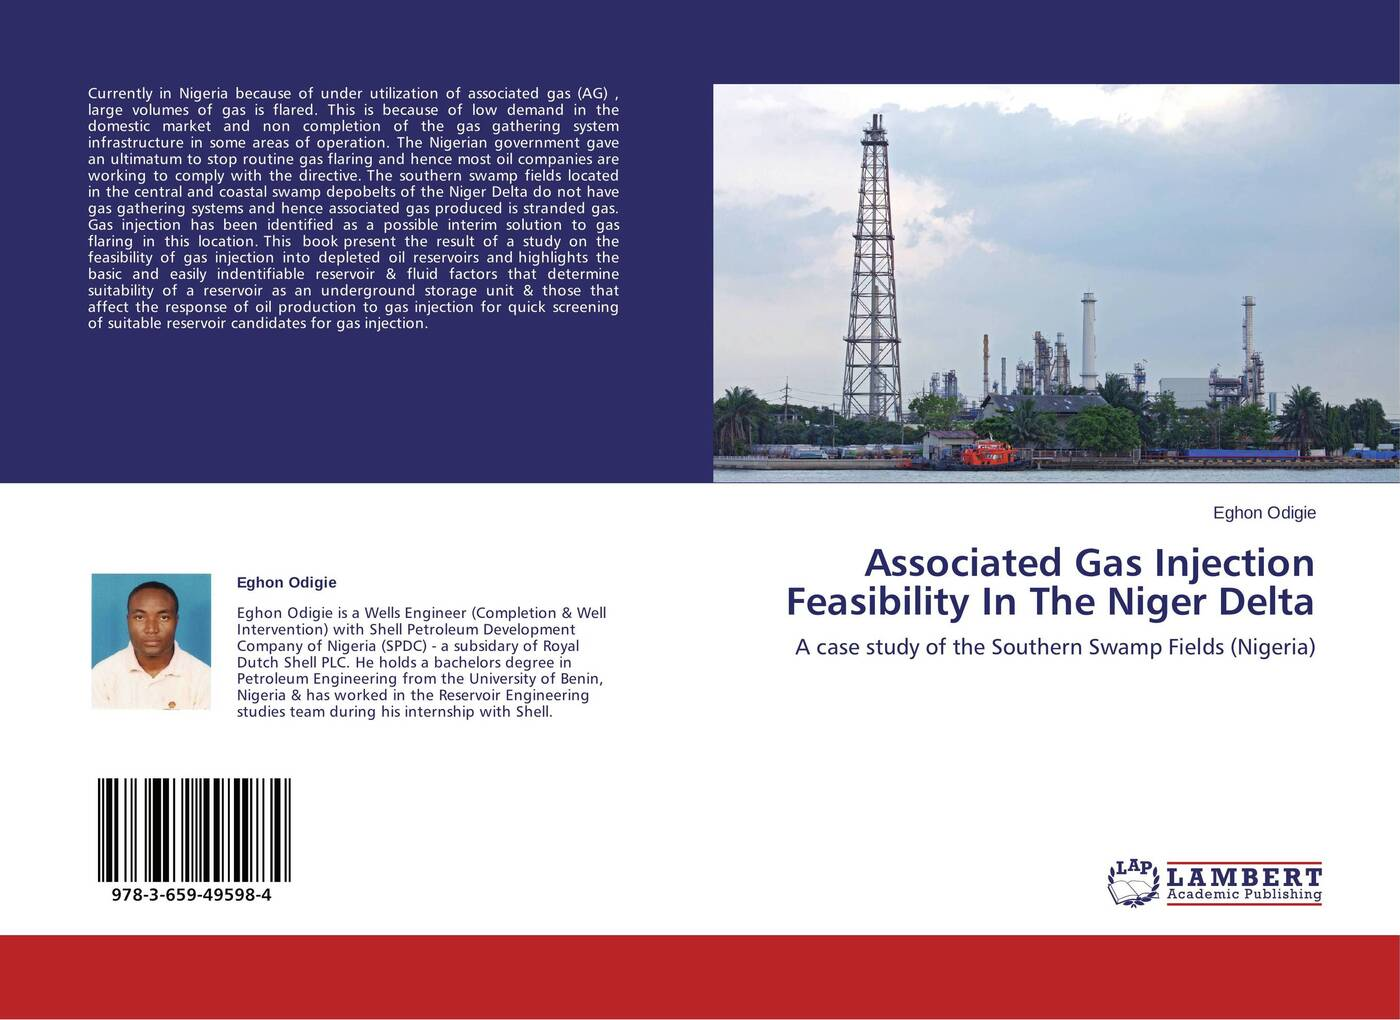 Eghon Odigie Associated Gas Injection Feasibility In The Niger Delta wu ying acid gas injection and related technologies